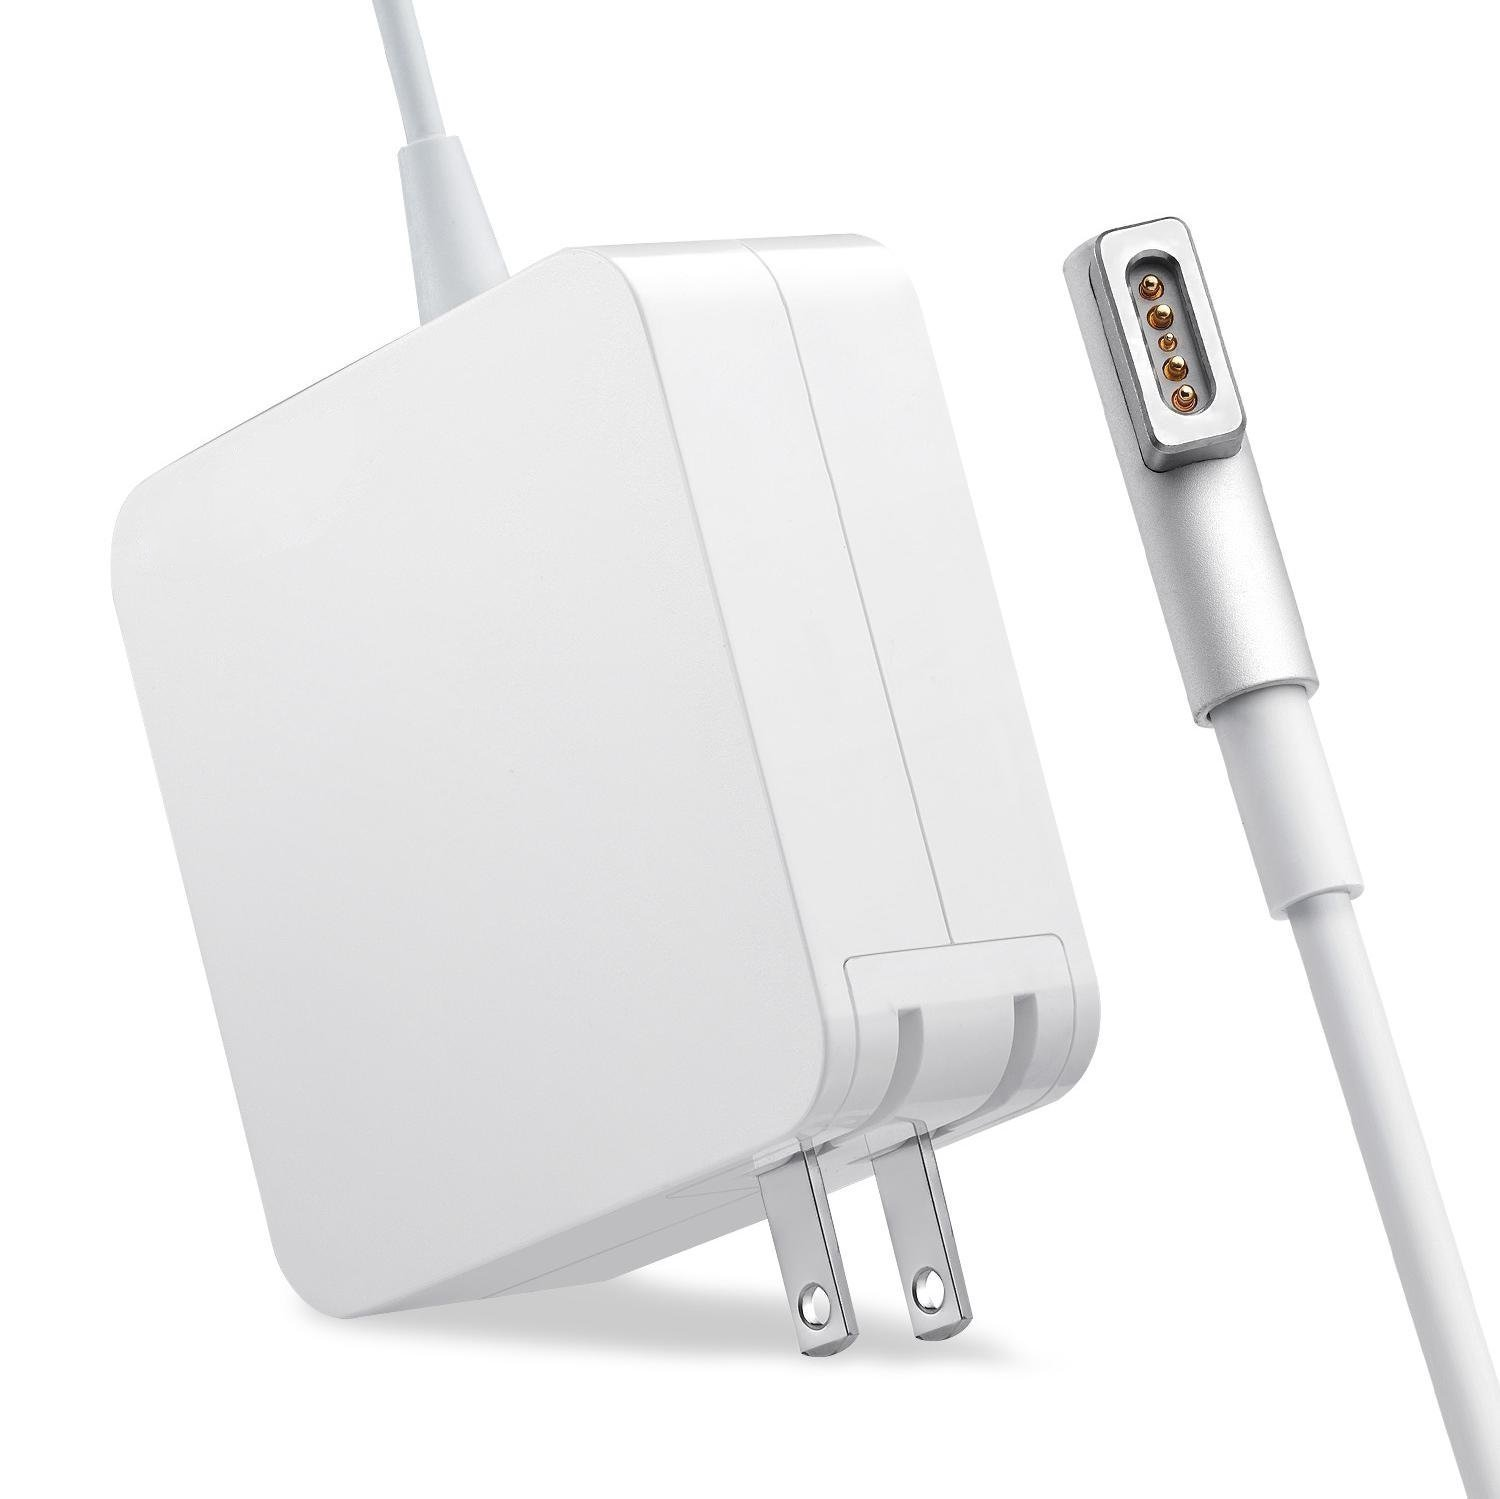 Macbook Pro Charger, AC 60W Magsafe L-Tip Power Adapter Replacement Charger for Apple Macbook Pro 13 inch A1181 A1278 A1184 A1330 A1342 A1344 (Before Mid 2012 Models) by Freedom